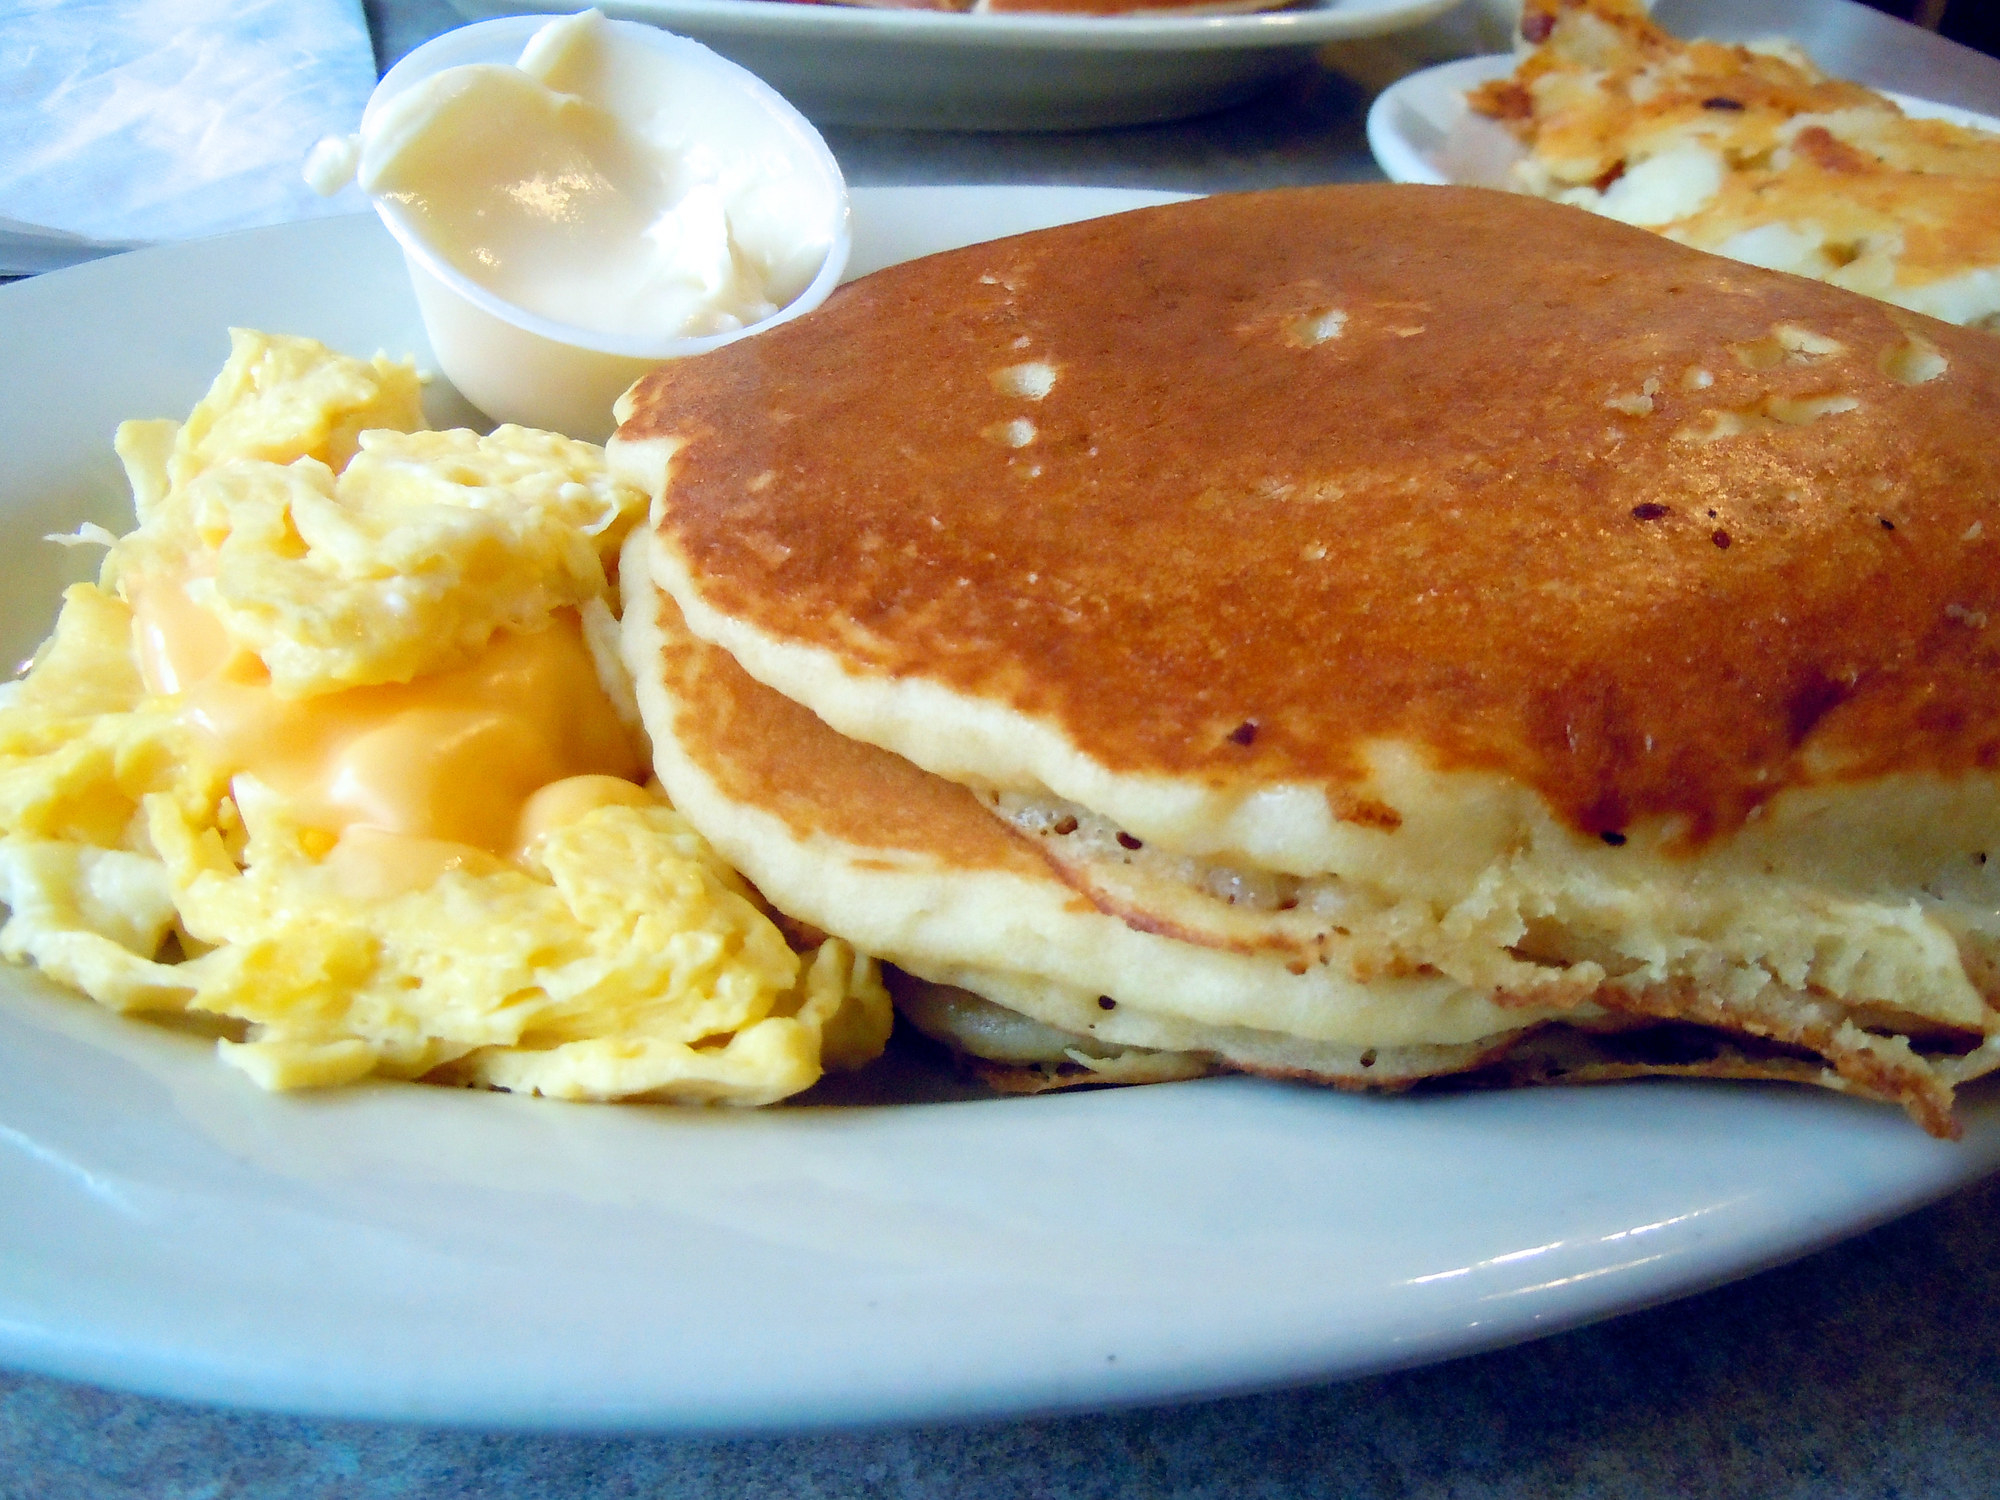 A stack of pancakes with eggs.